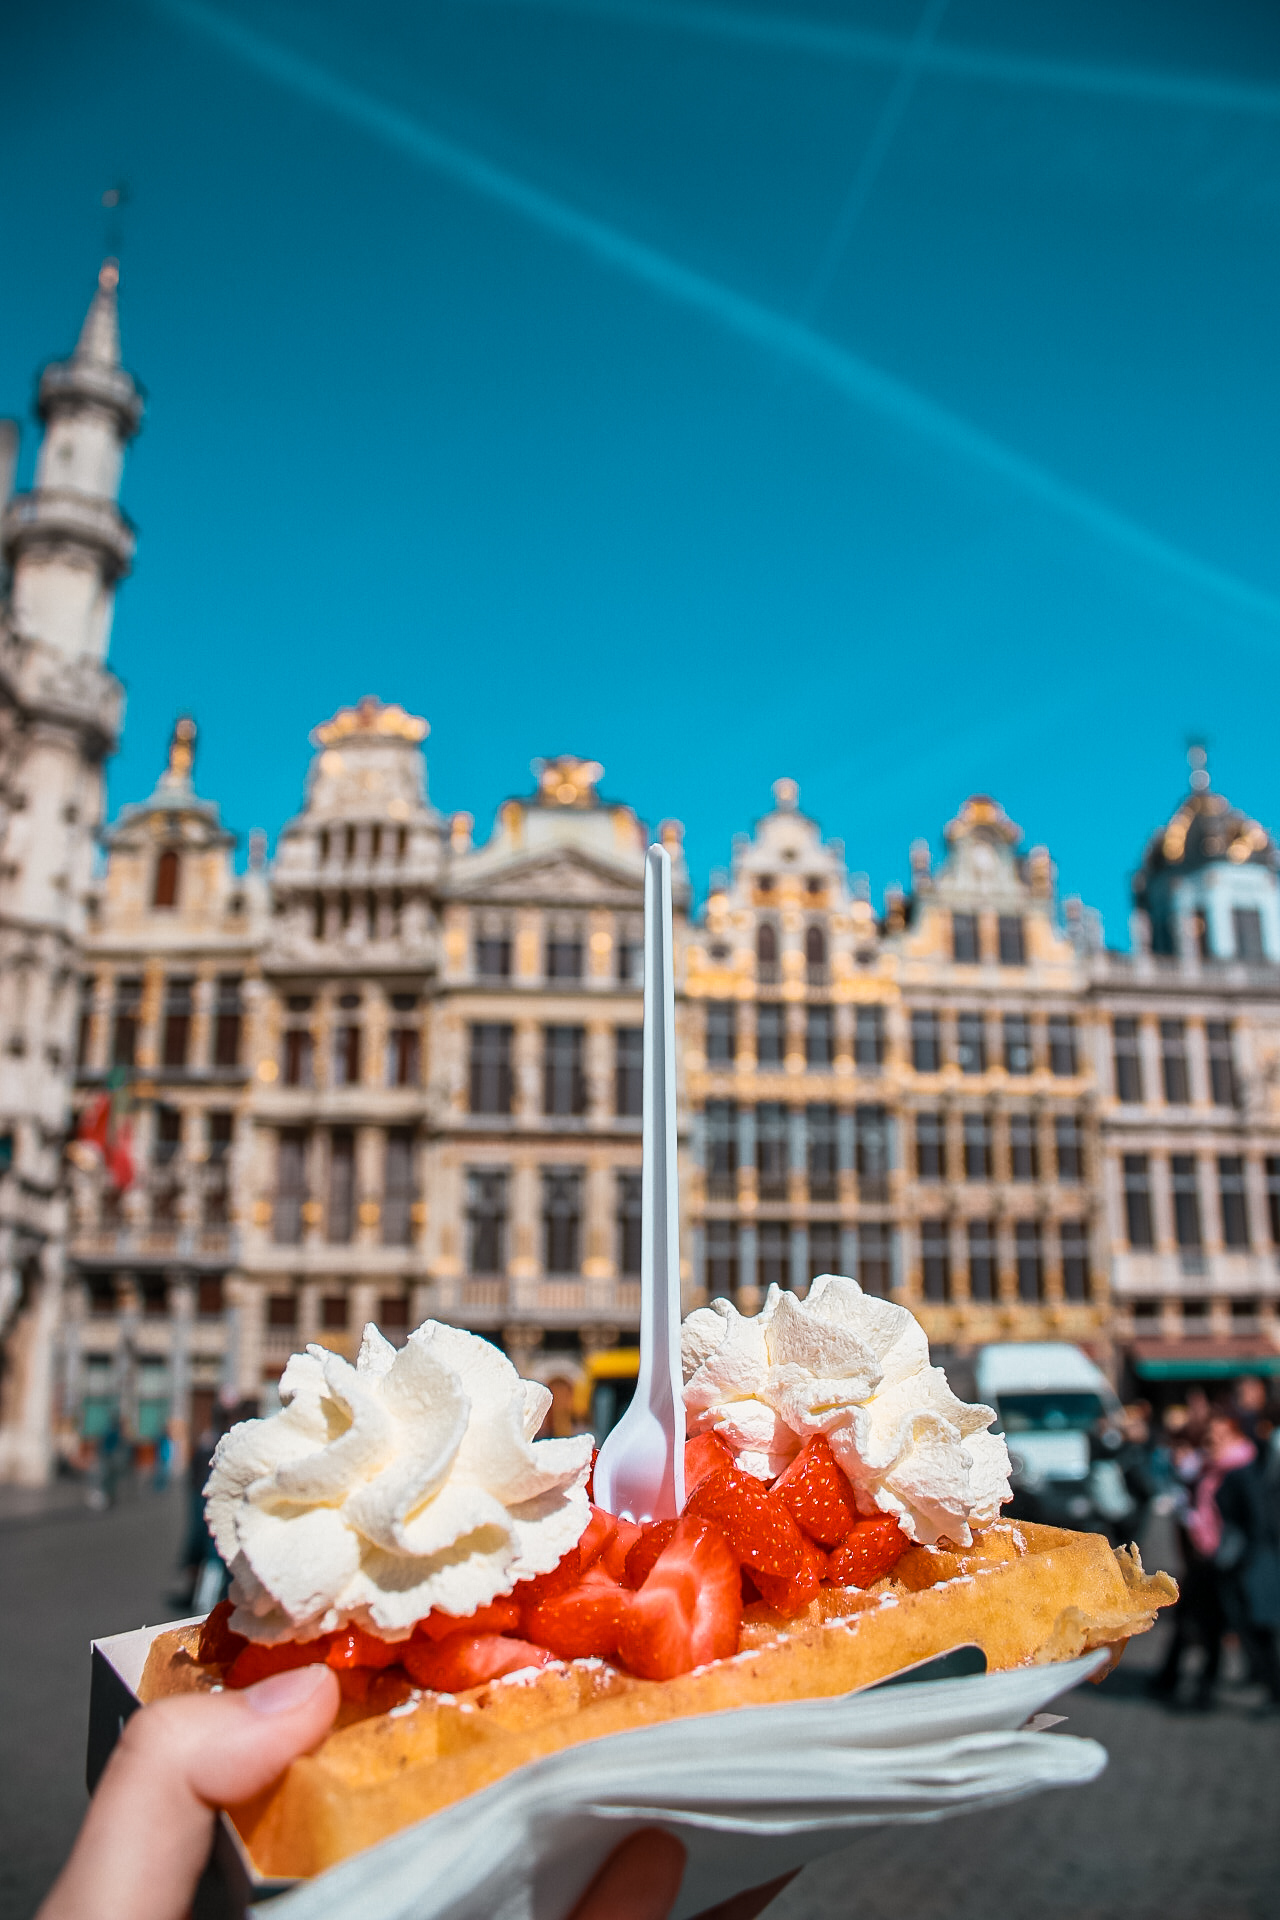 Brussels Europe interrail trip 2 week itinerary